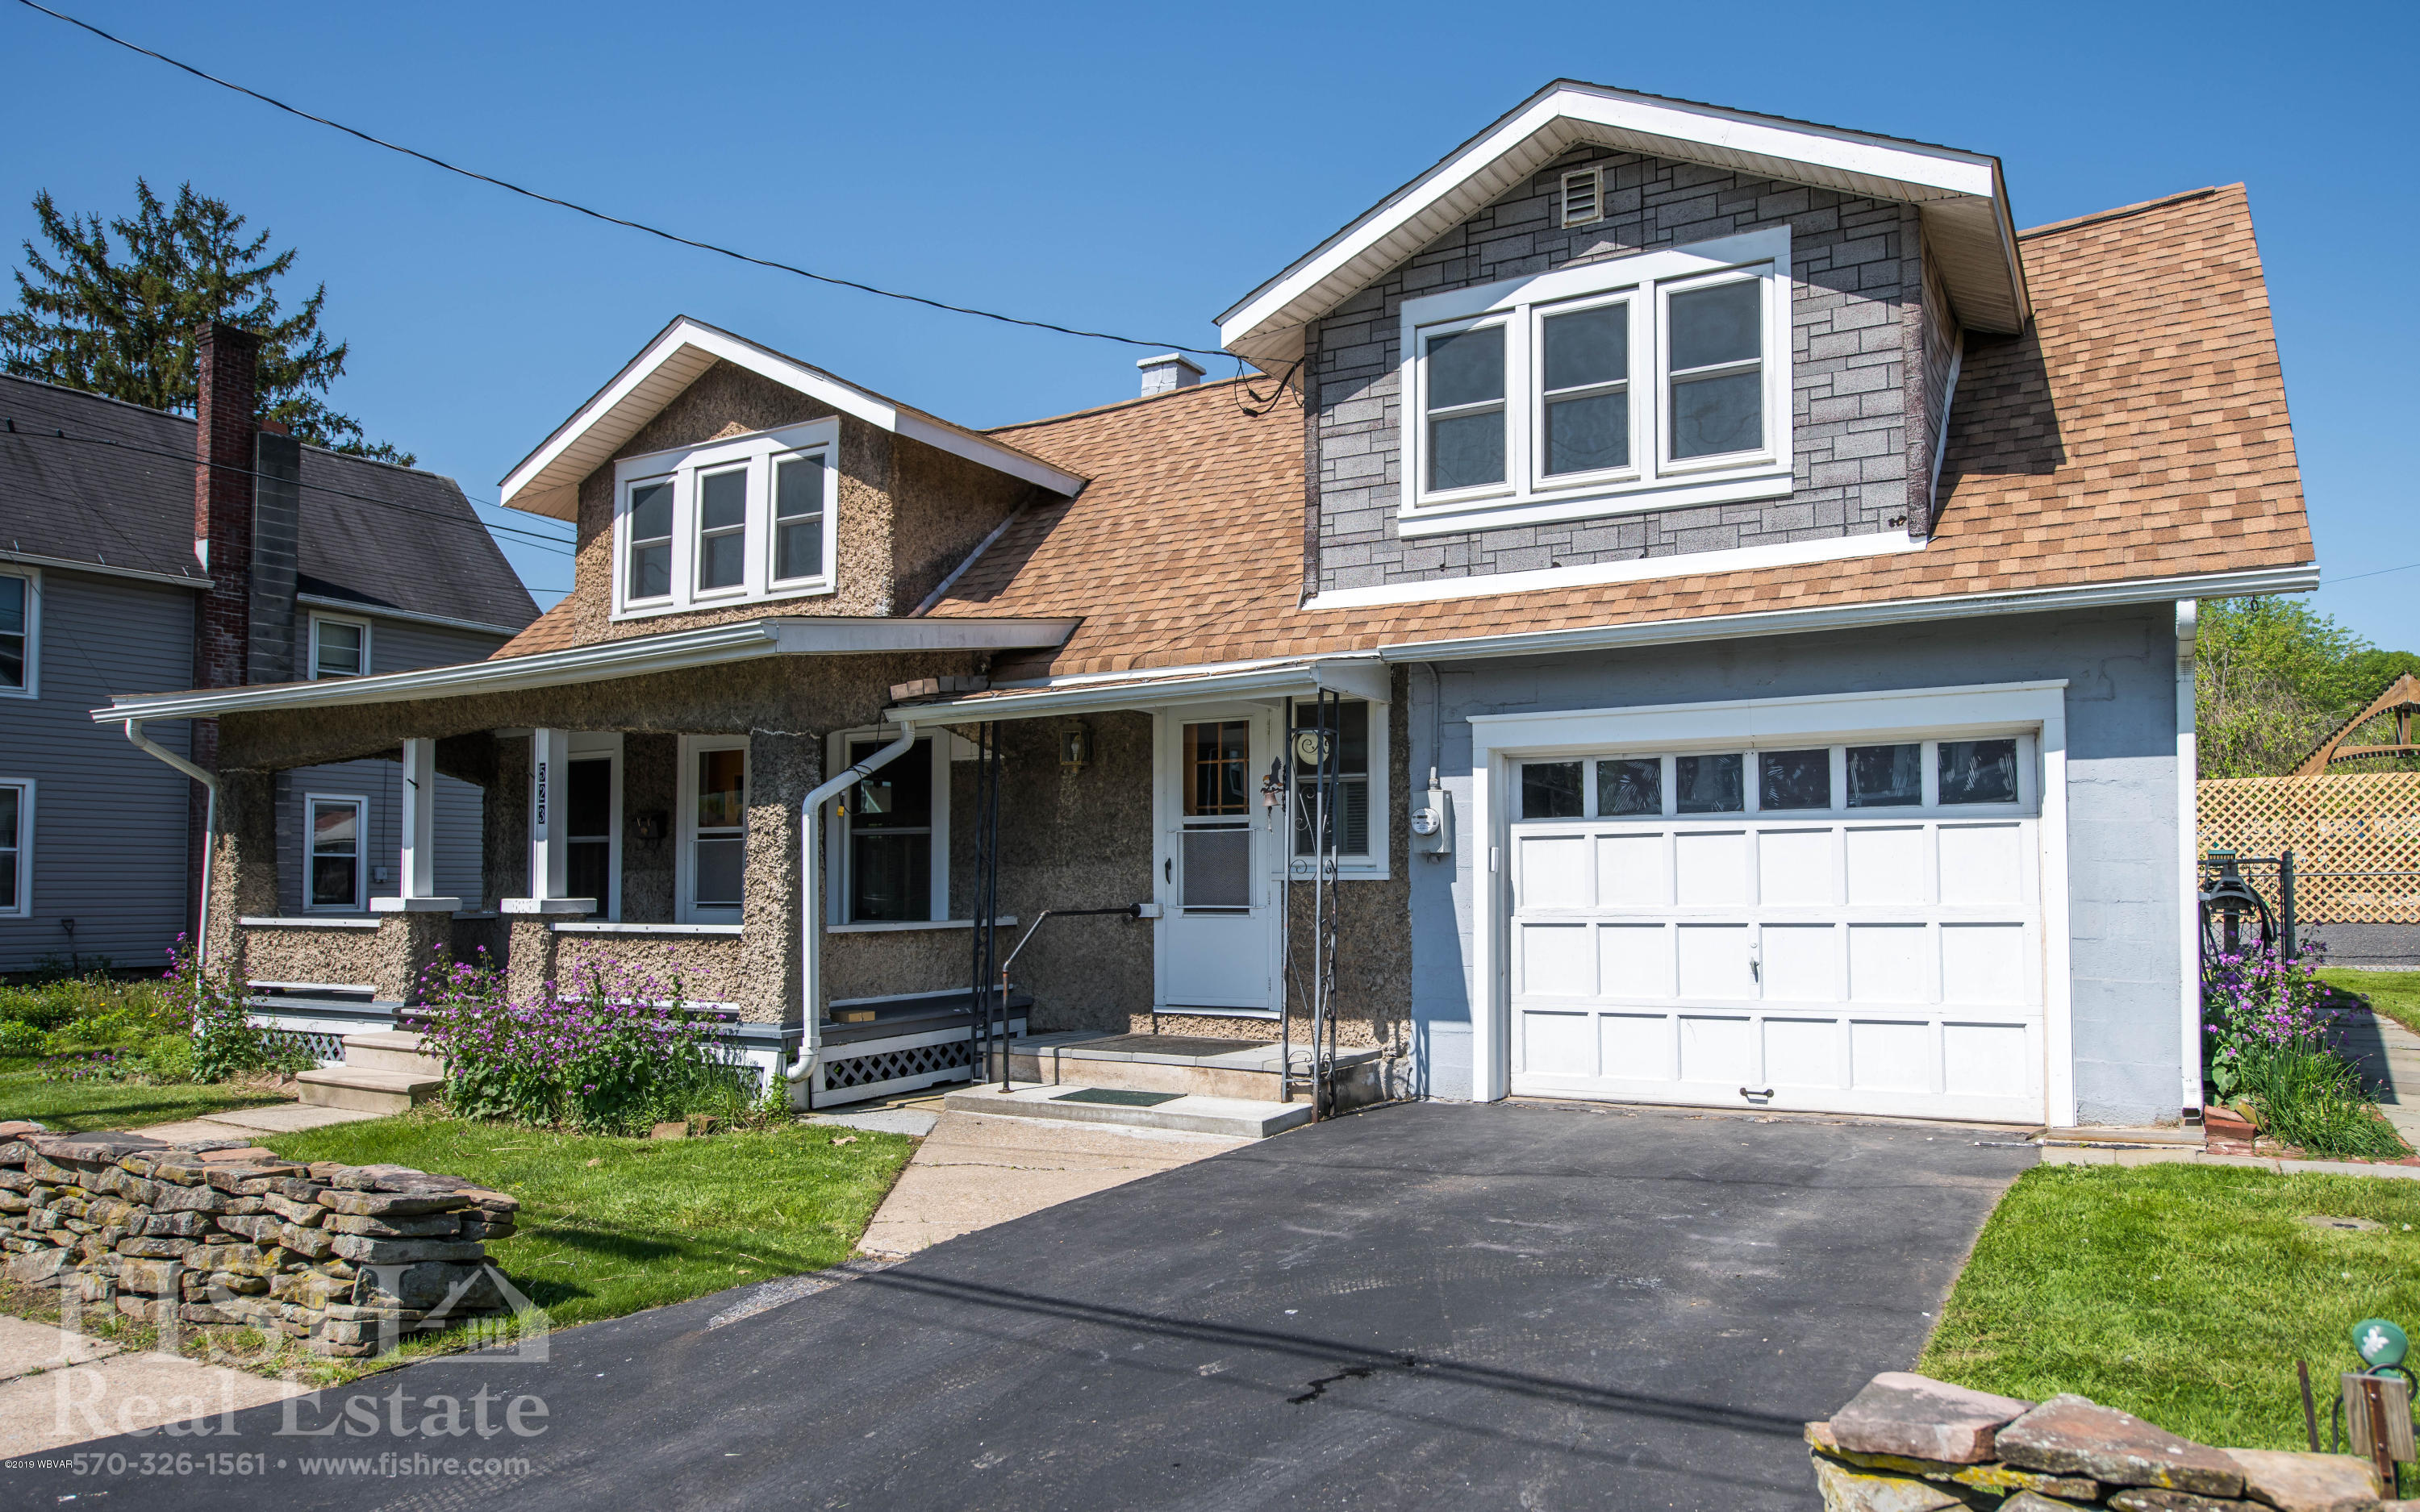 523 LINCOLN AVENUE,Jersey Shore,PA 17740,3 Bedrooms Bedrooms,1 BathroomBathrooms,Residential,LINCOLN,WB-87354